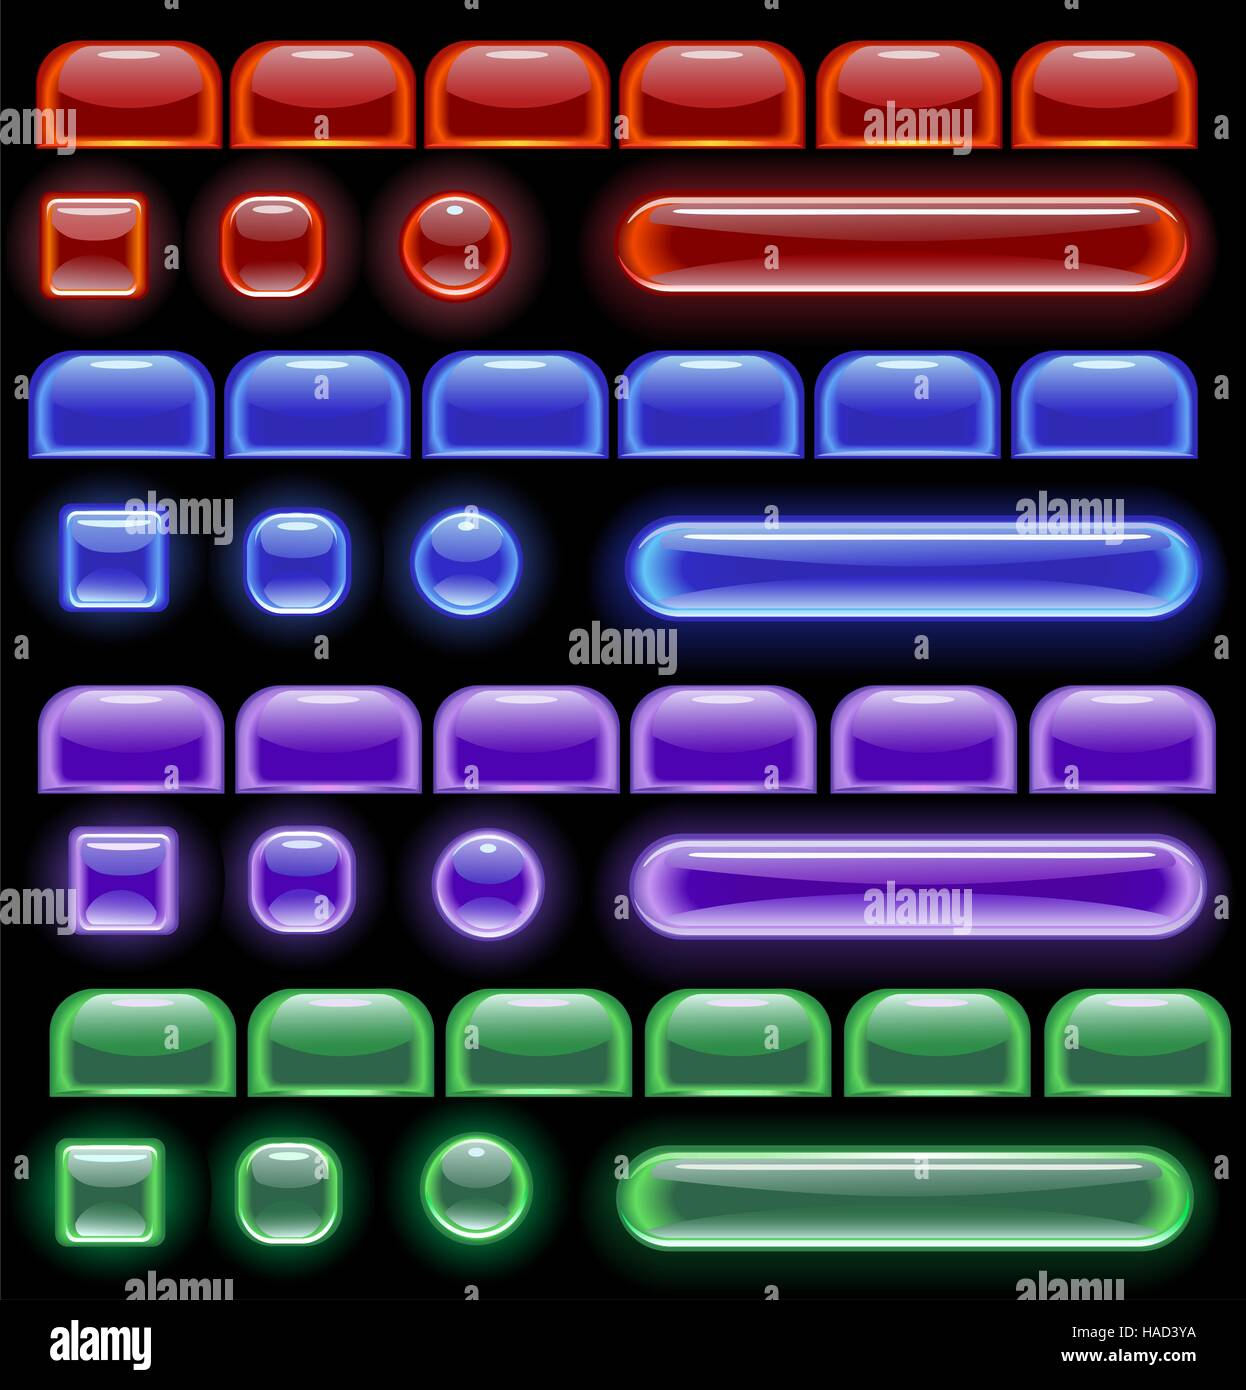 glowing computer icons: red, blue, green and purple on a black background. - Stock Vector